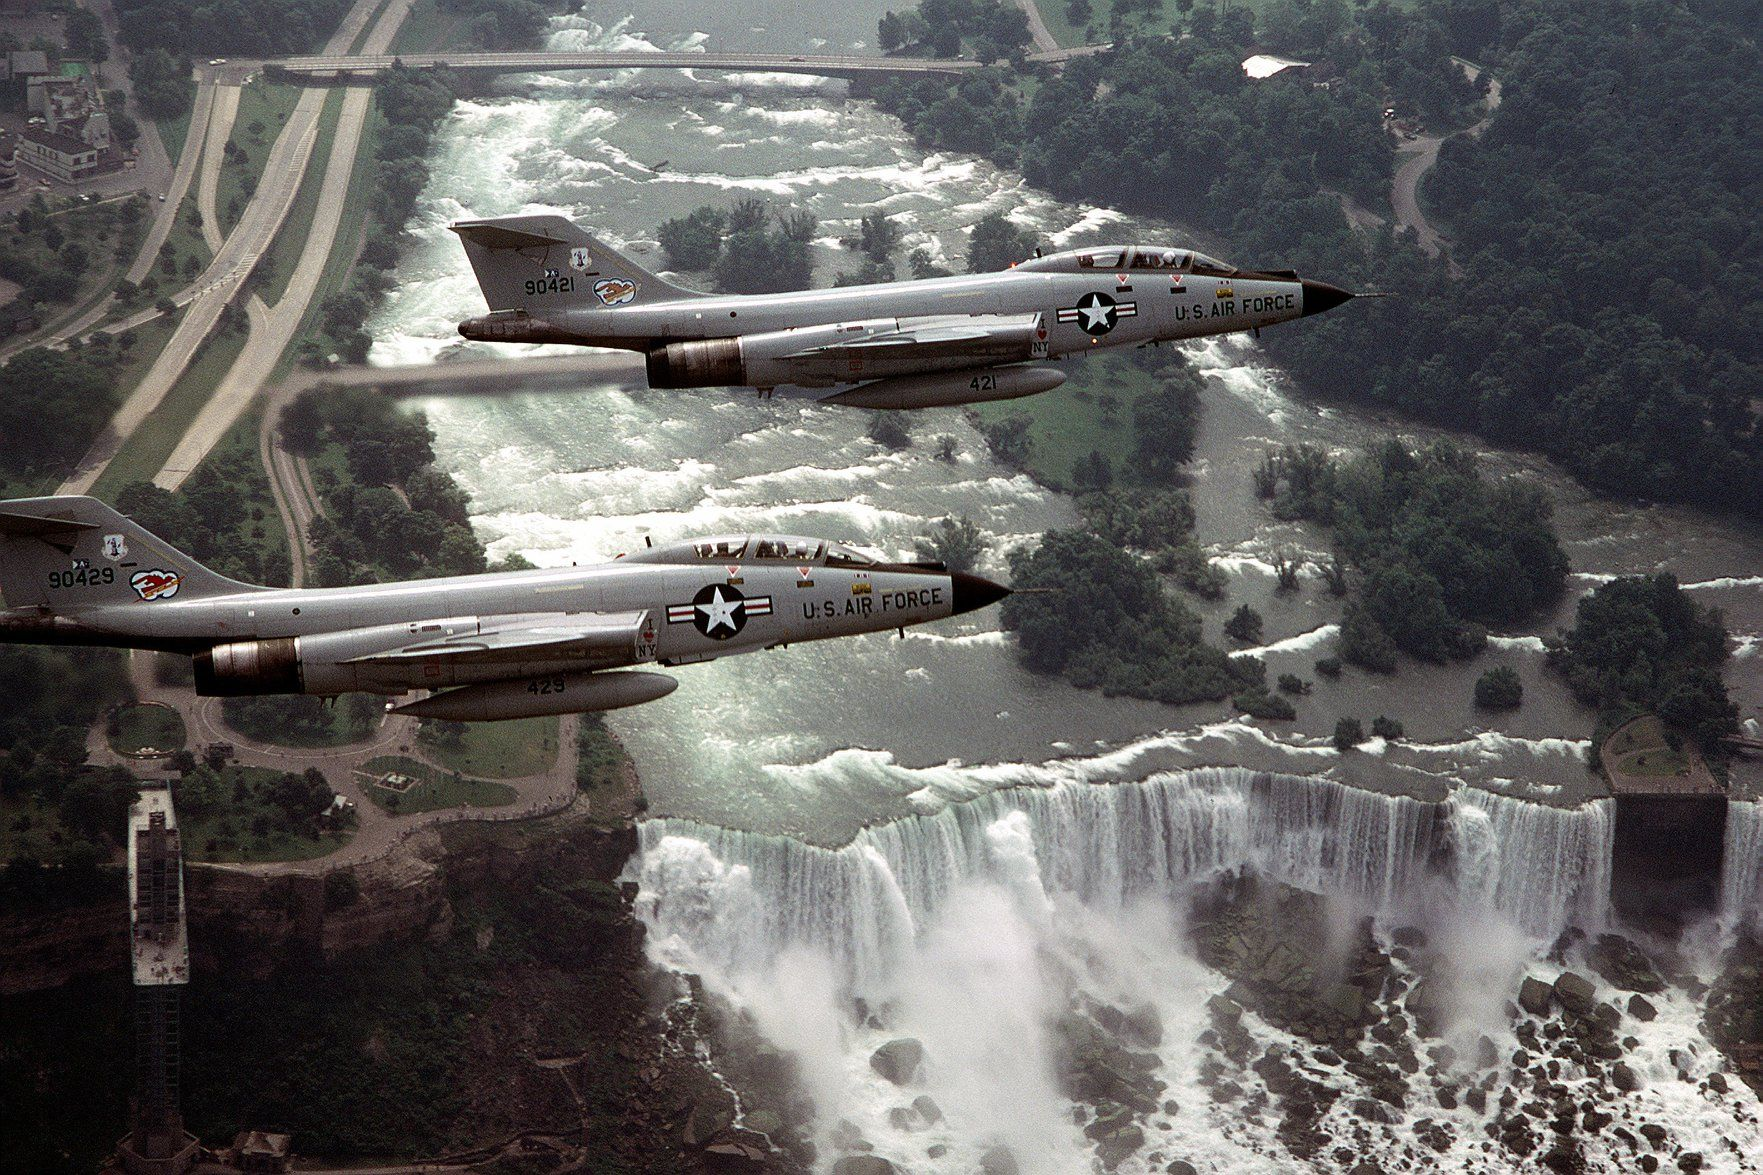 F101 Voodoo aircraft over Niagara Falls during exercise